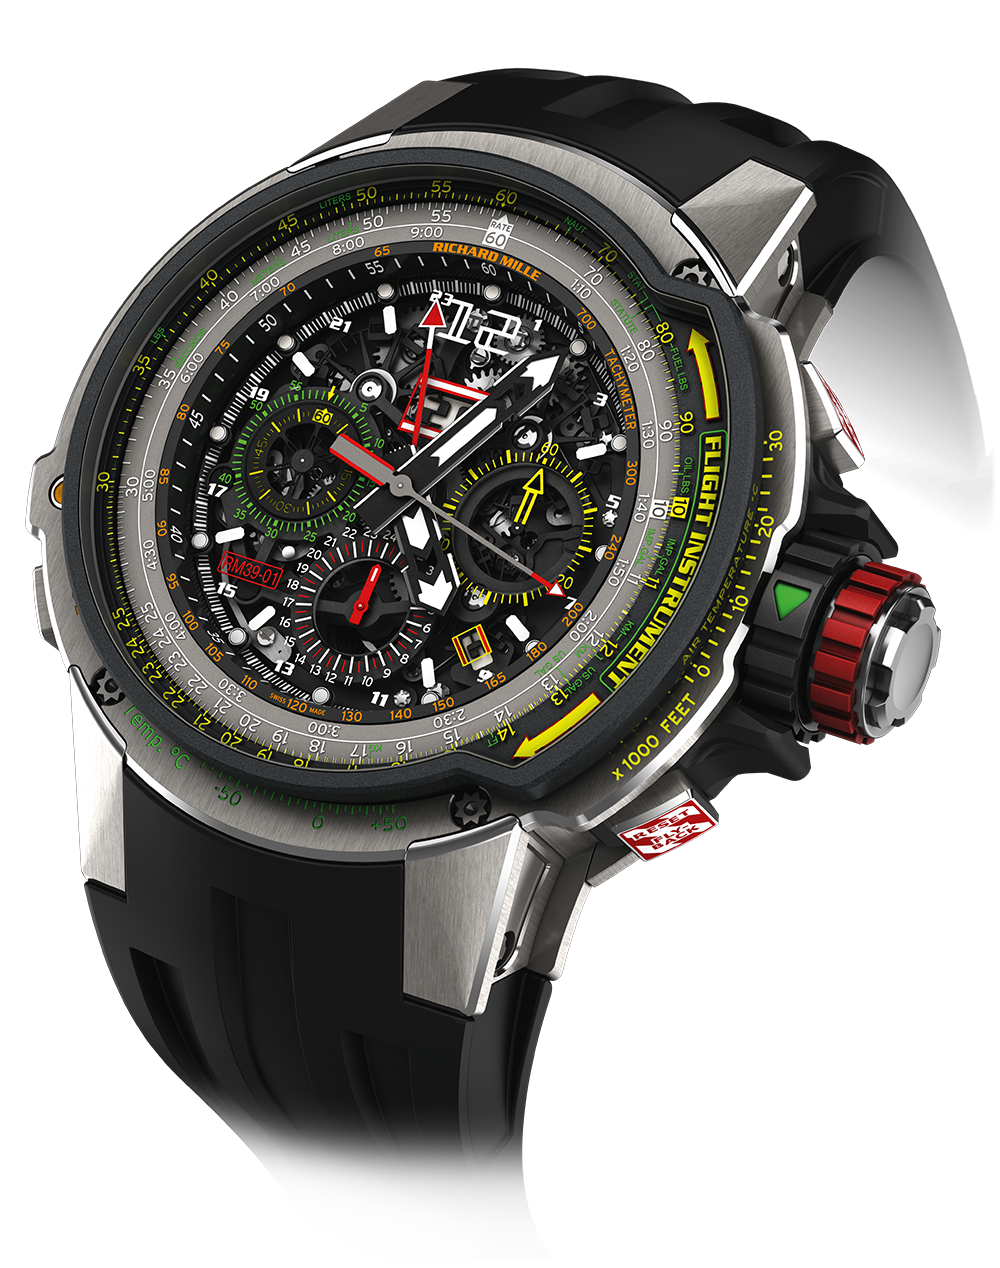 Rm 39-01-automatic flyback chronograph aviation